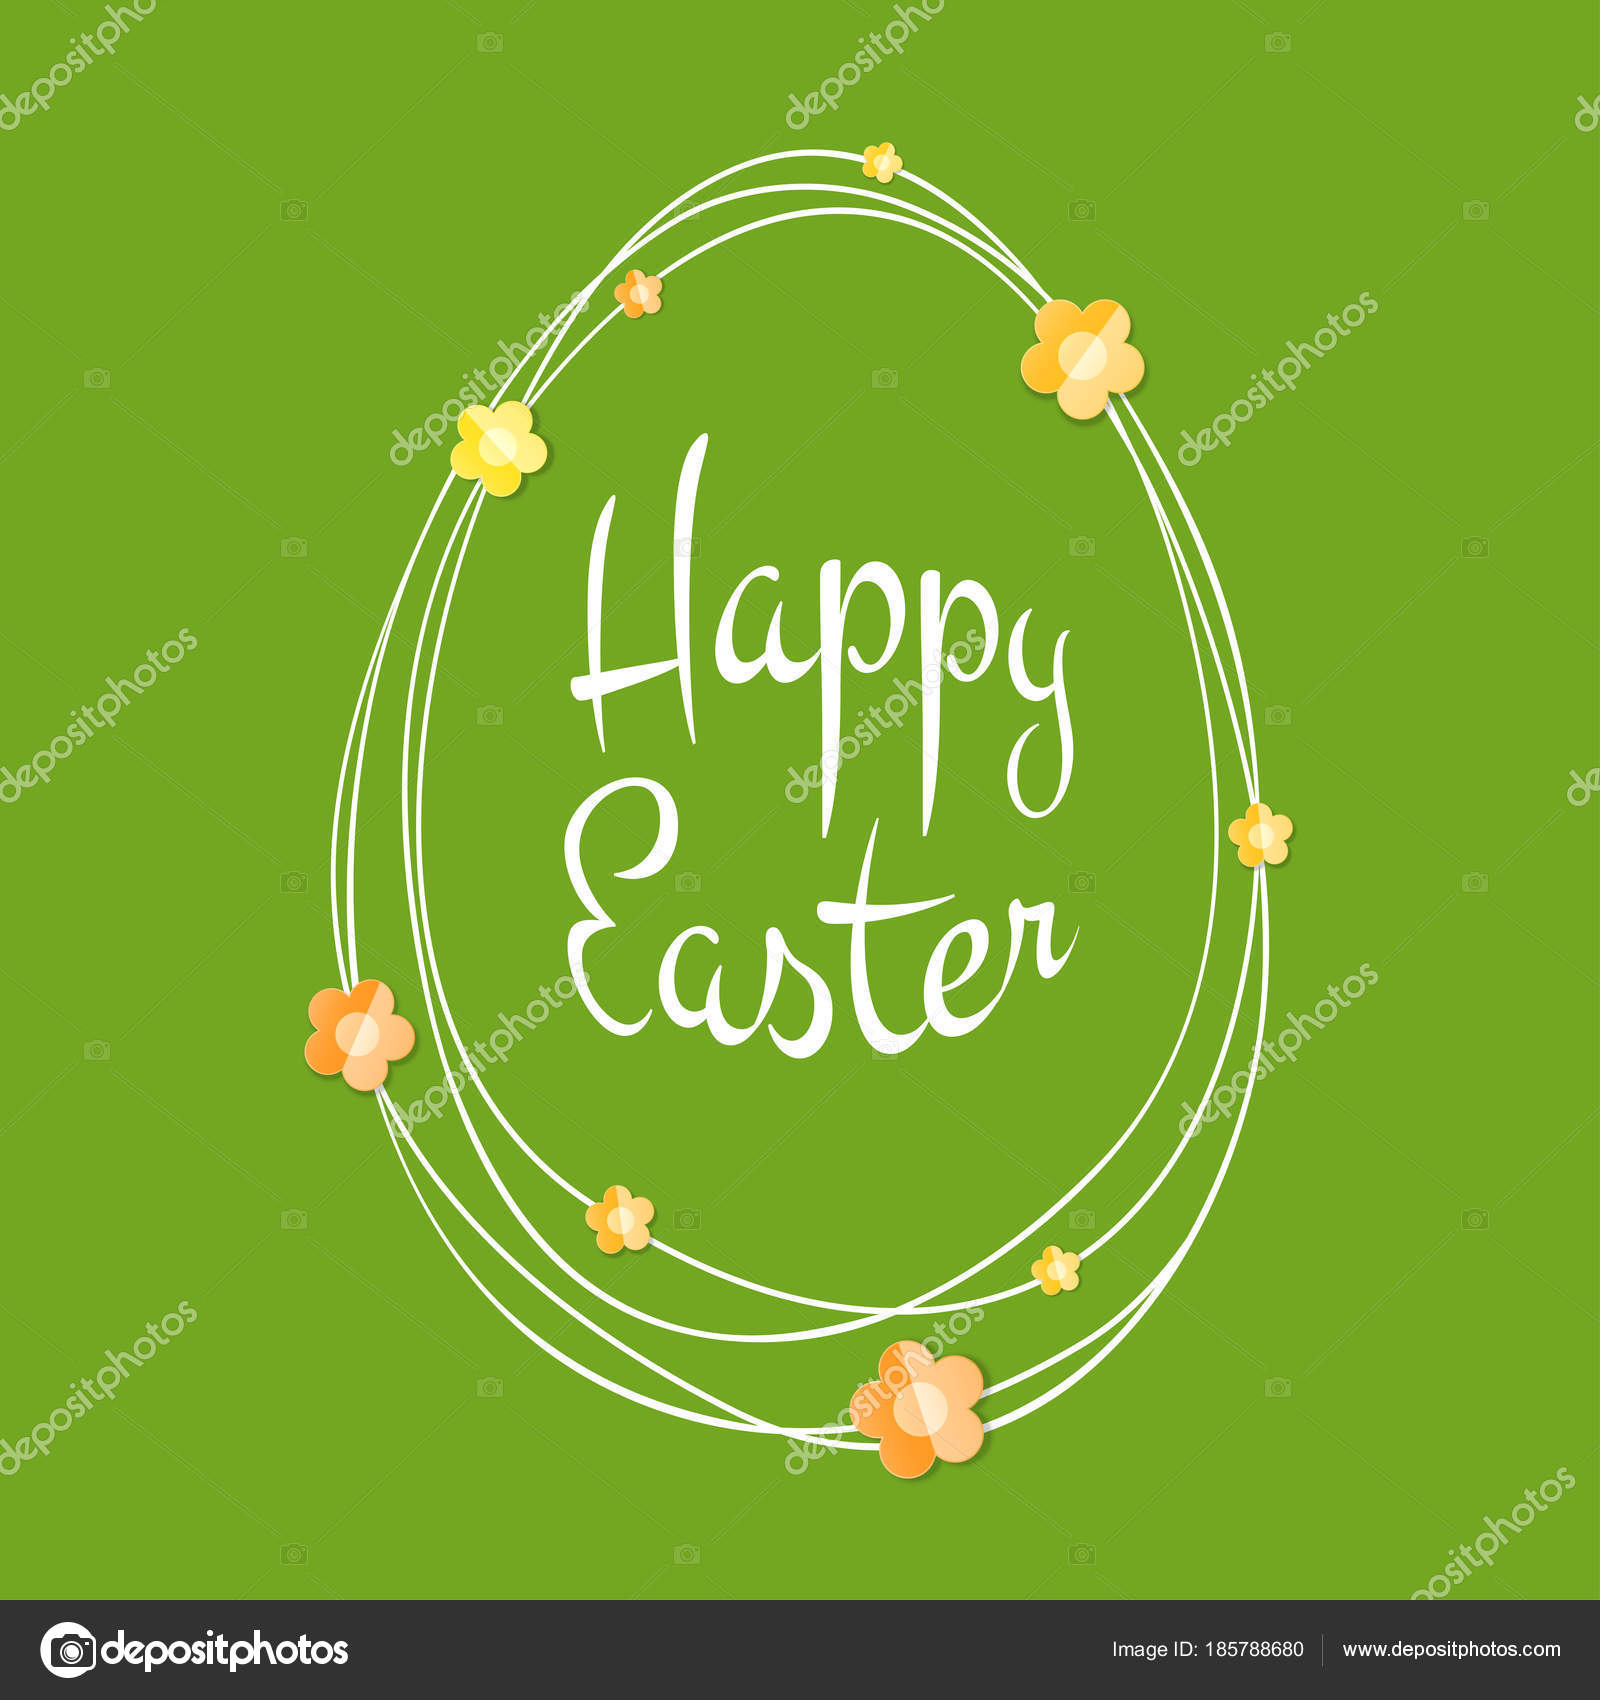 Easter Greetings Card Egg Frame With Scribble Lines Calligraphic